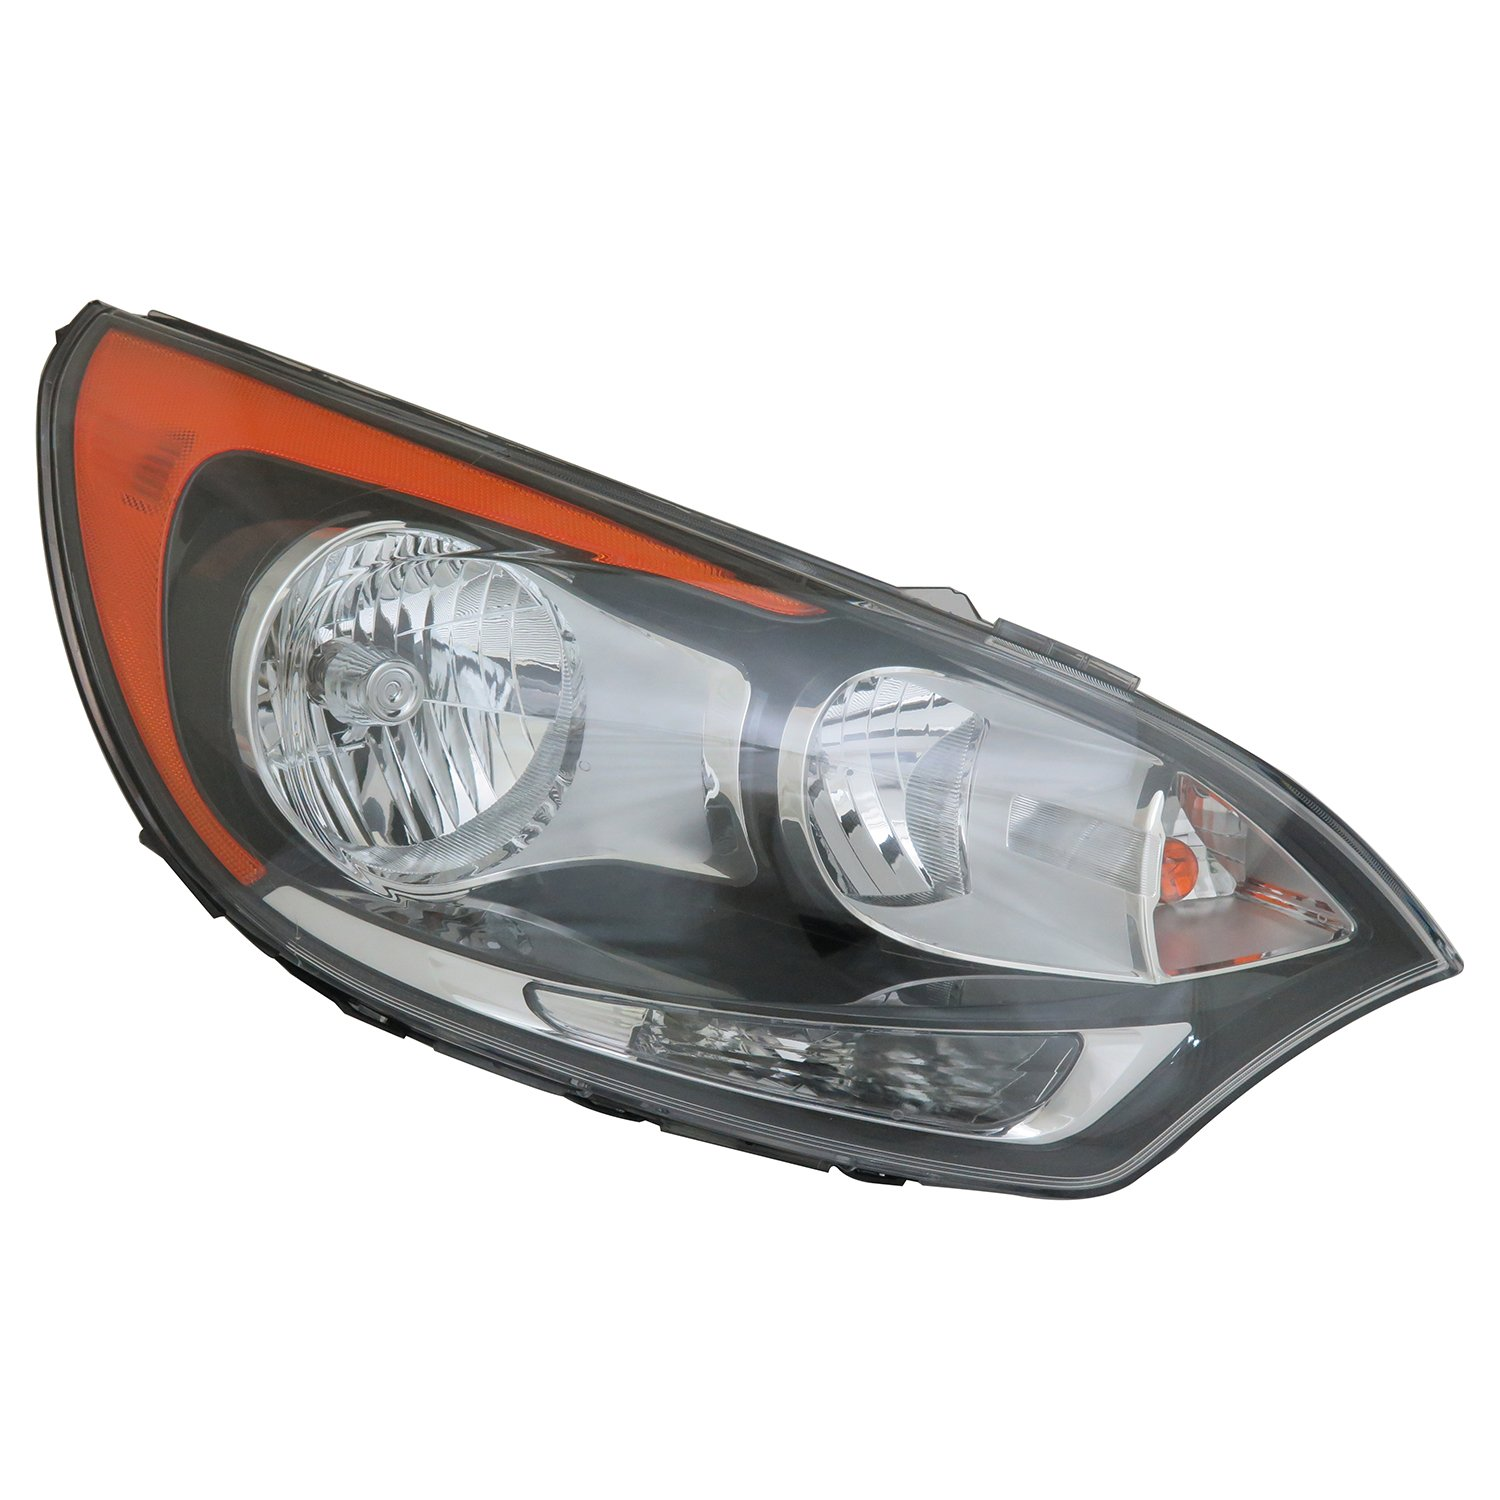 TYC 20-9229-00-9 Replacement Right Head Lamp